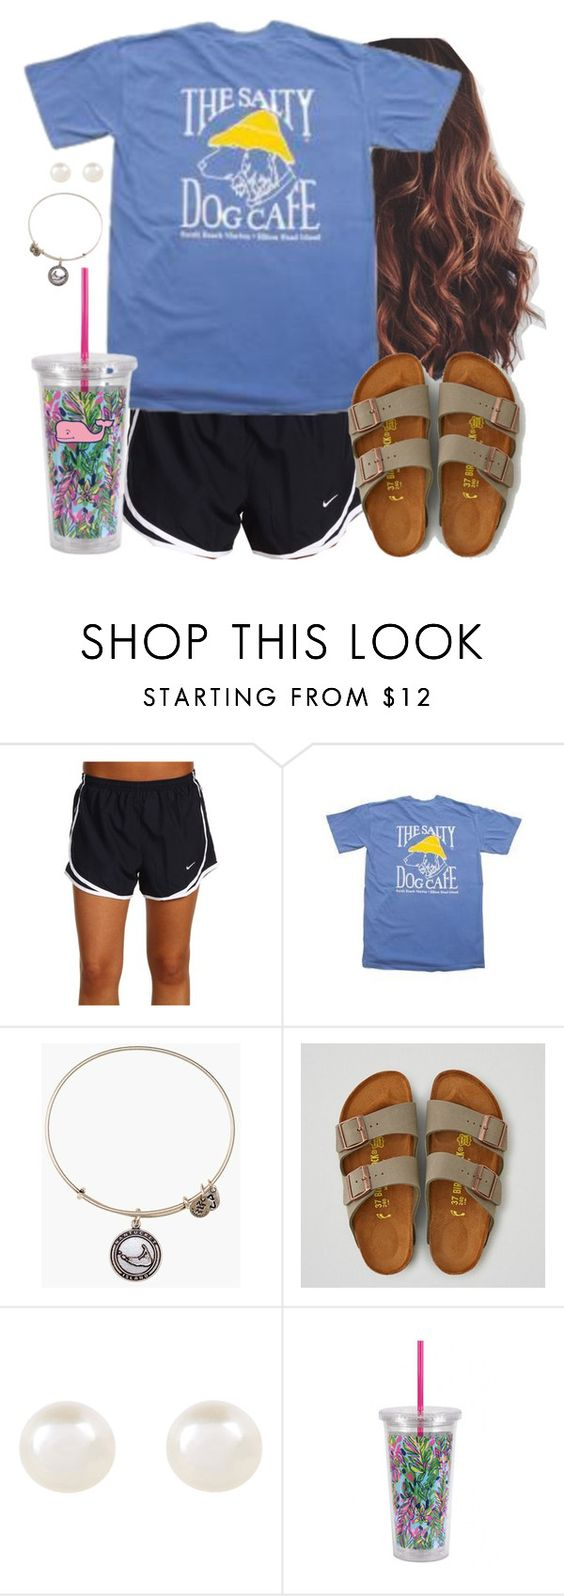 """"""""""" by aweaver-2 ❤ liked on Polyvore featuring NIKE, Alex and Ani, American Eagle Outfitters, Accessorize, Lilly Pulitzer and Vineyard Vines"""